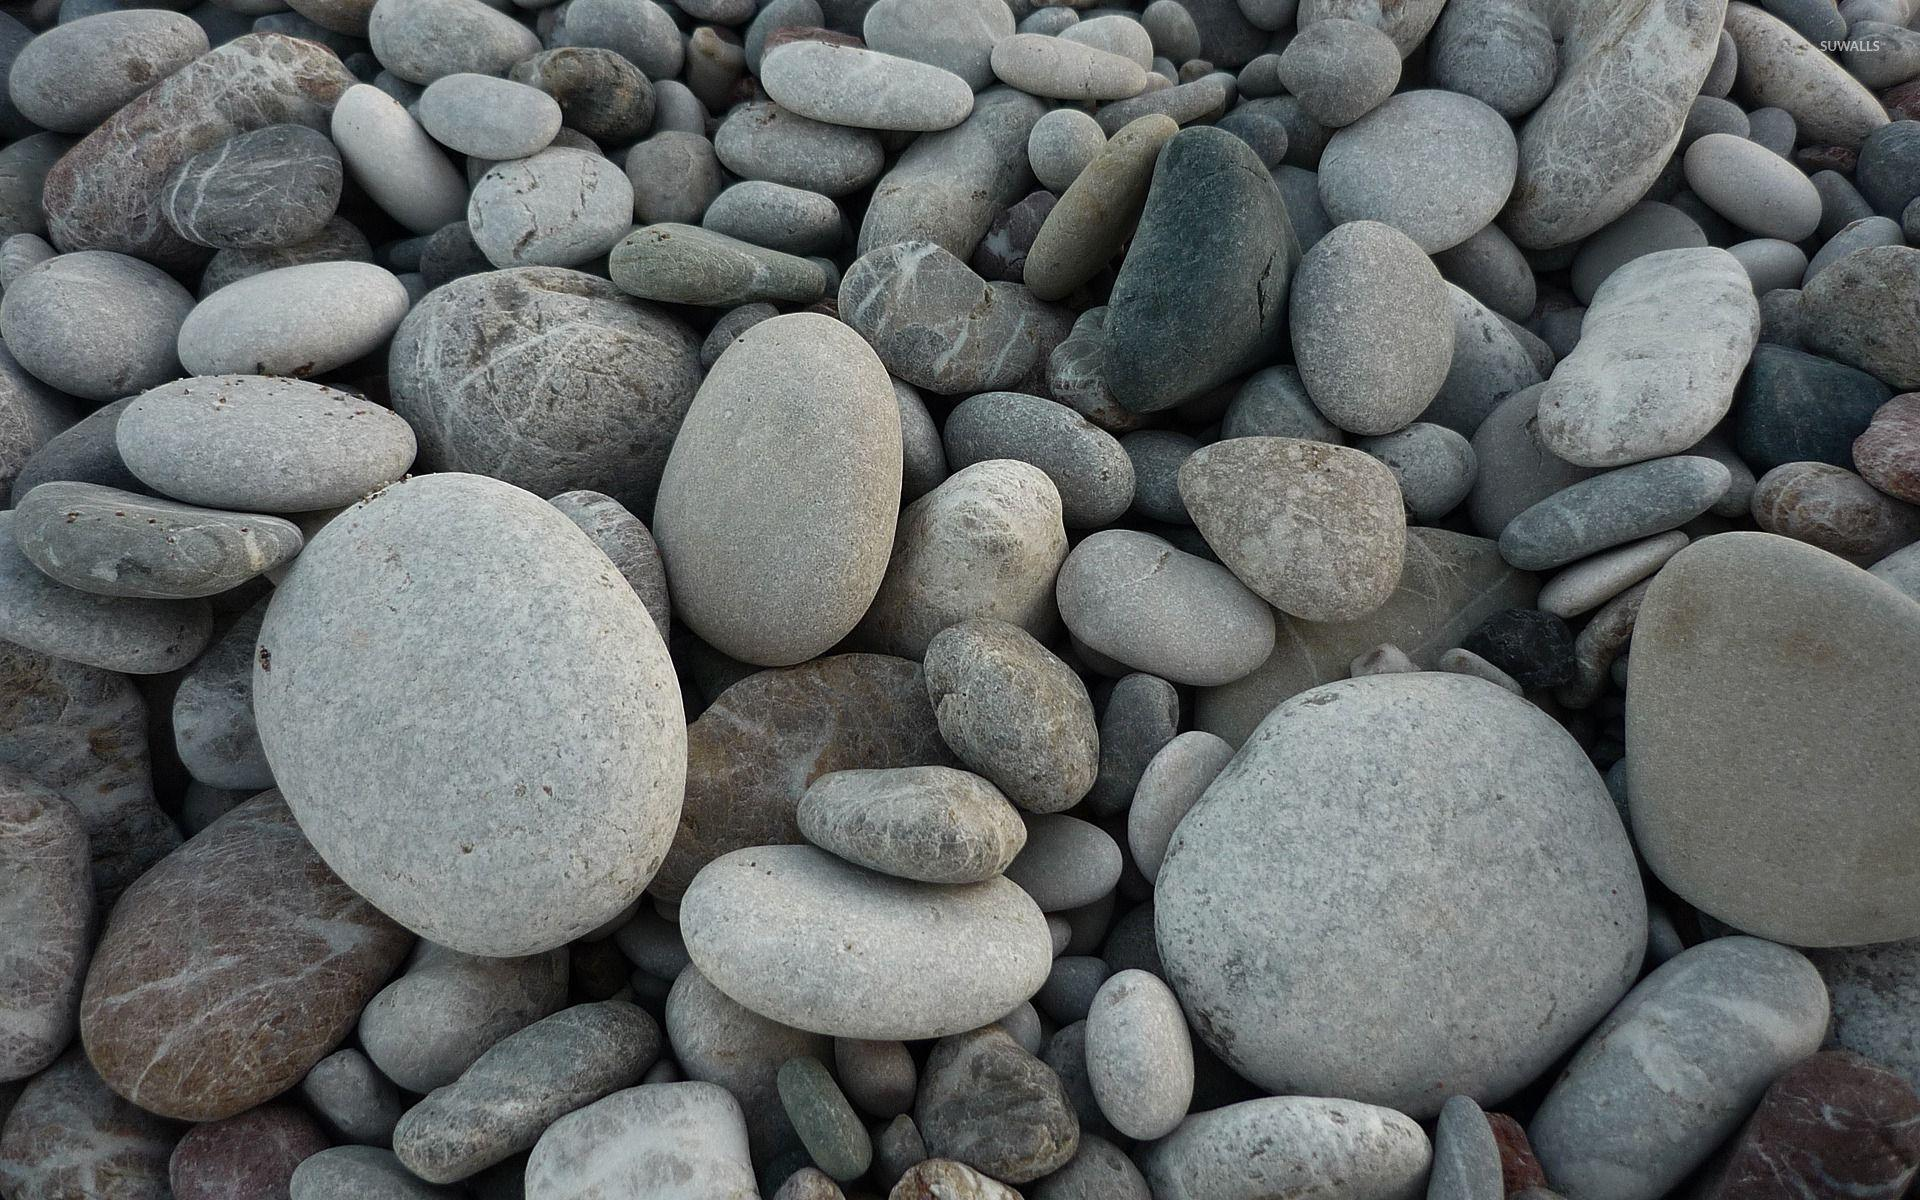 Gray pebbles wallpaper - Photography wallpapers - #53953